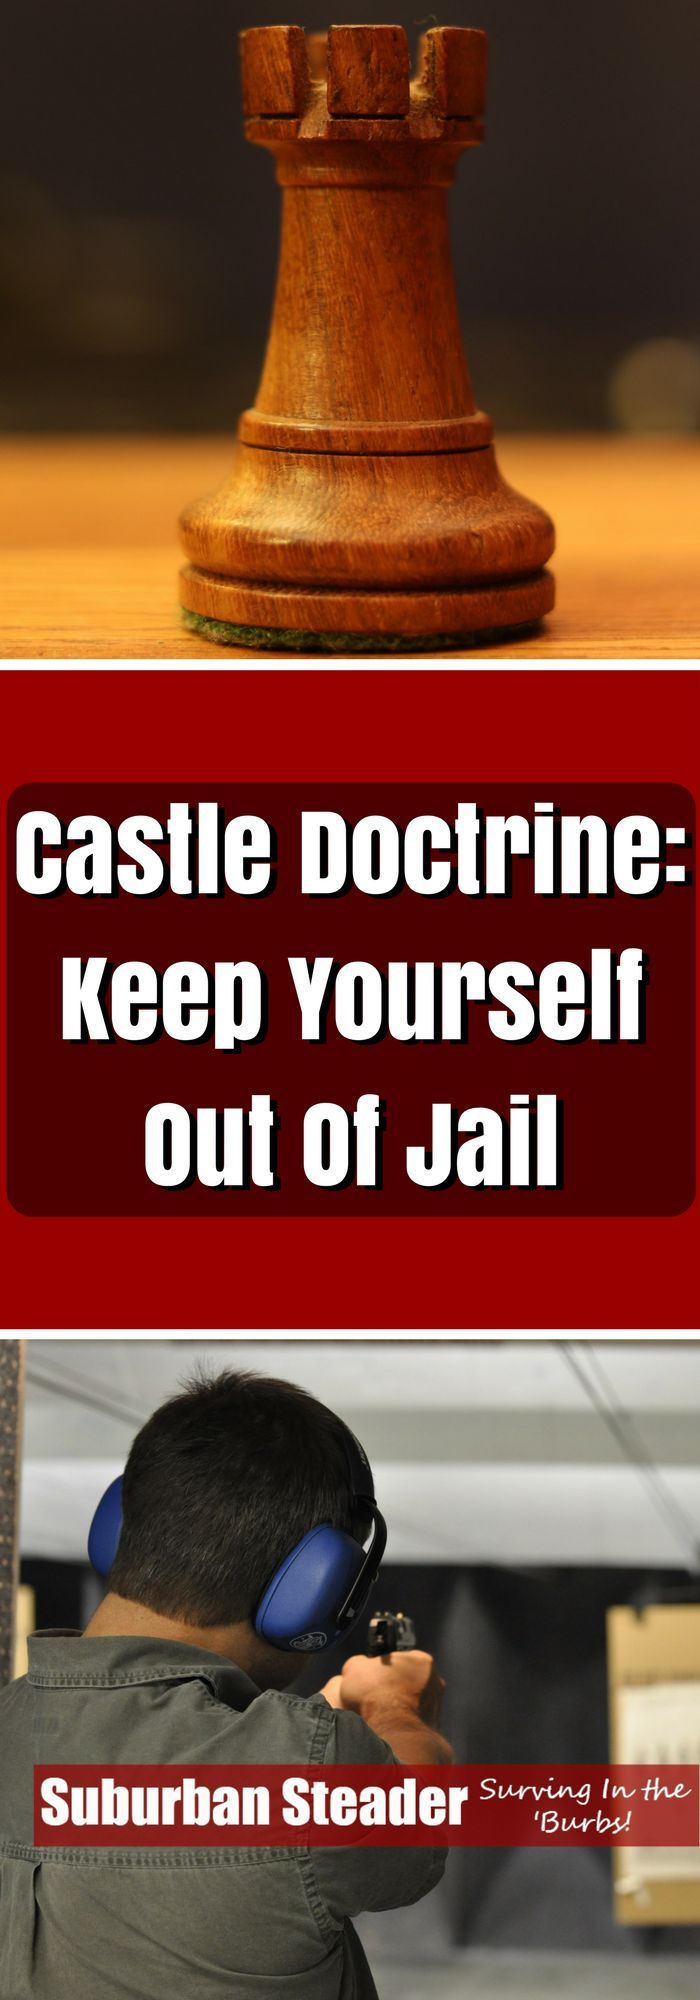 The Castle Doctrine and the Modified Castle Doctrine are the two common self-defense laws in the US. This article gives an overview of both of these laws.